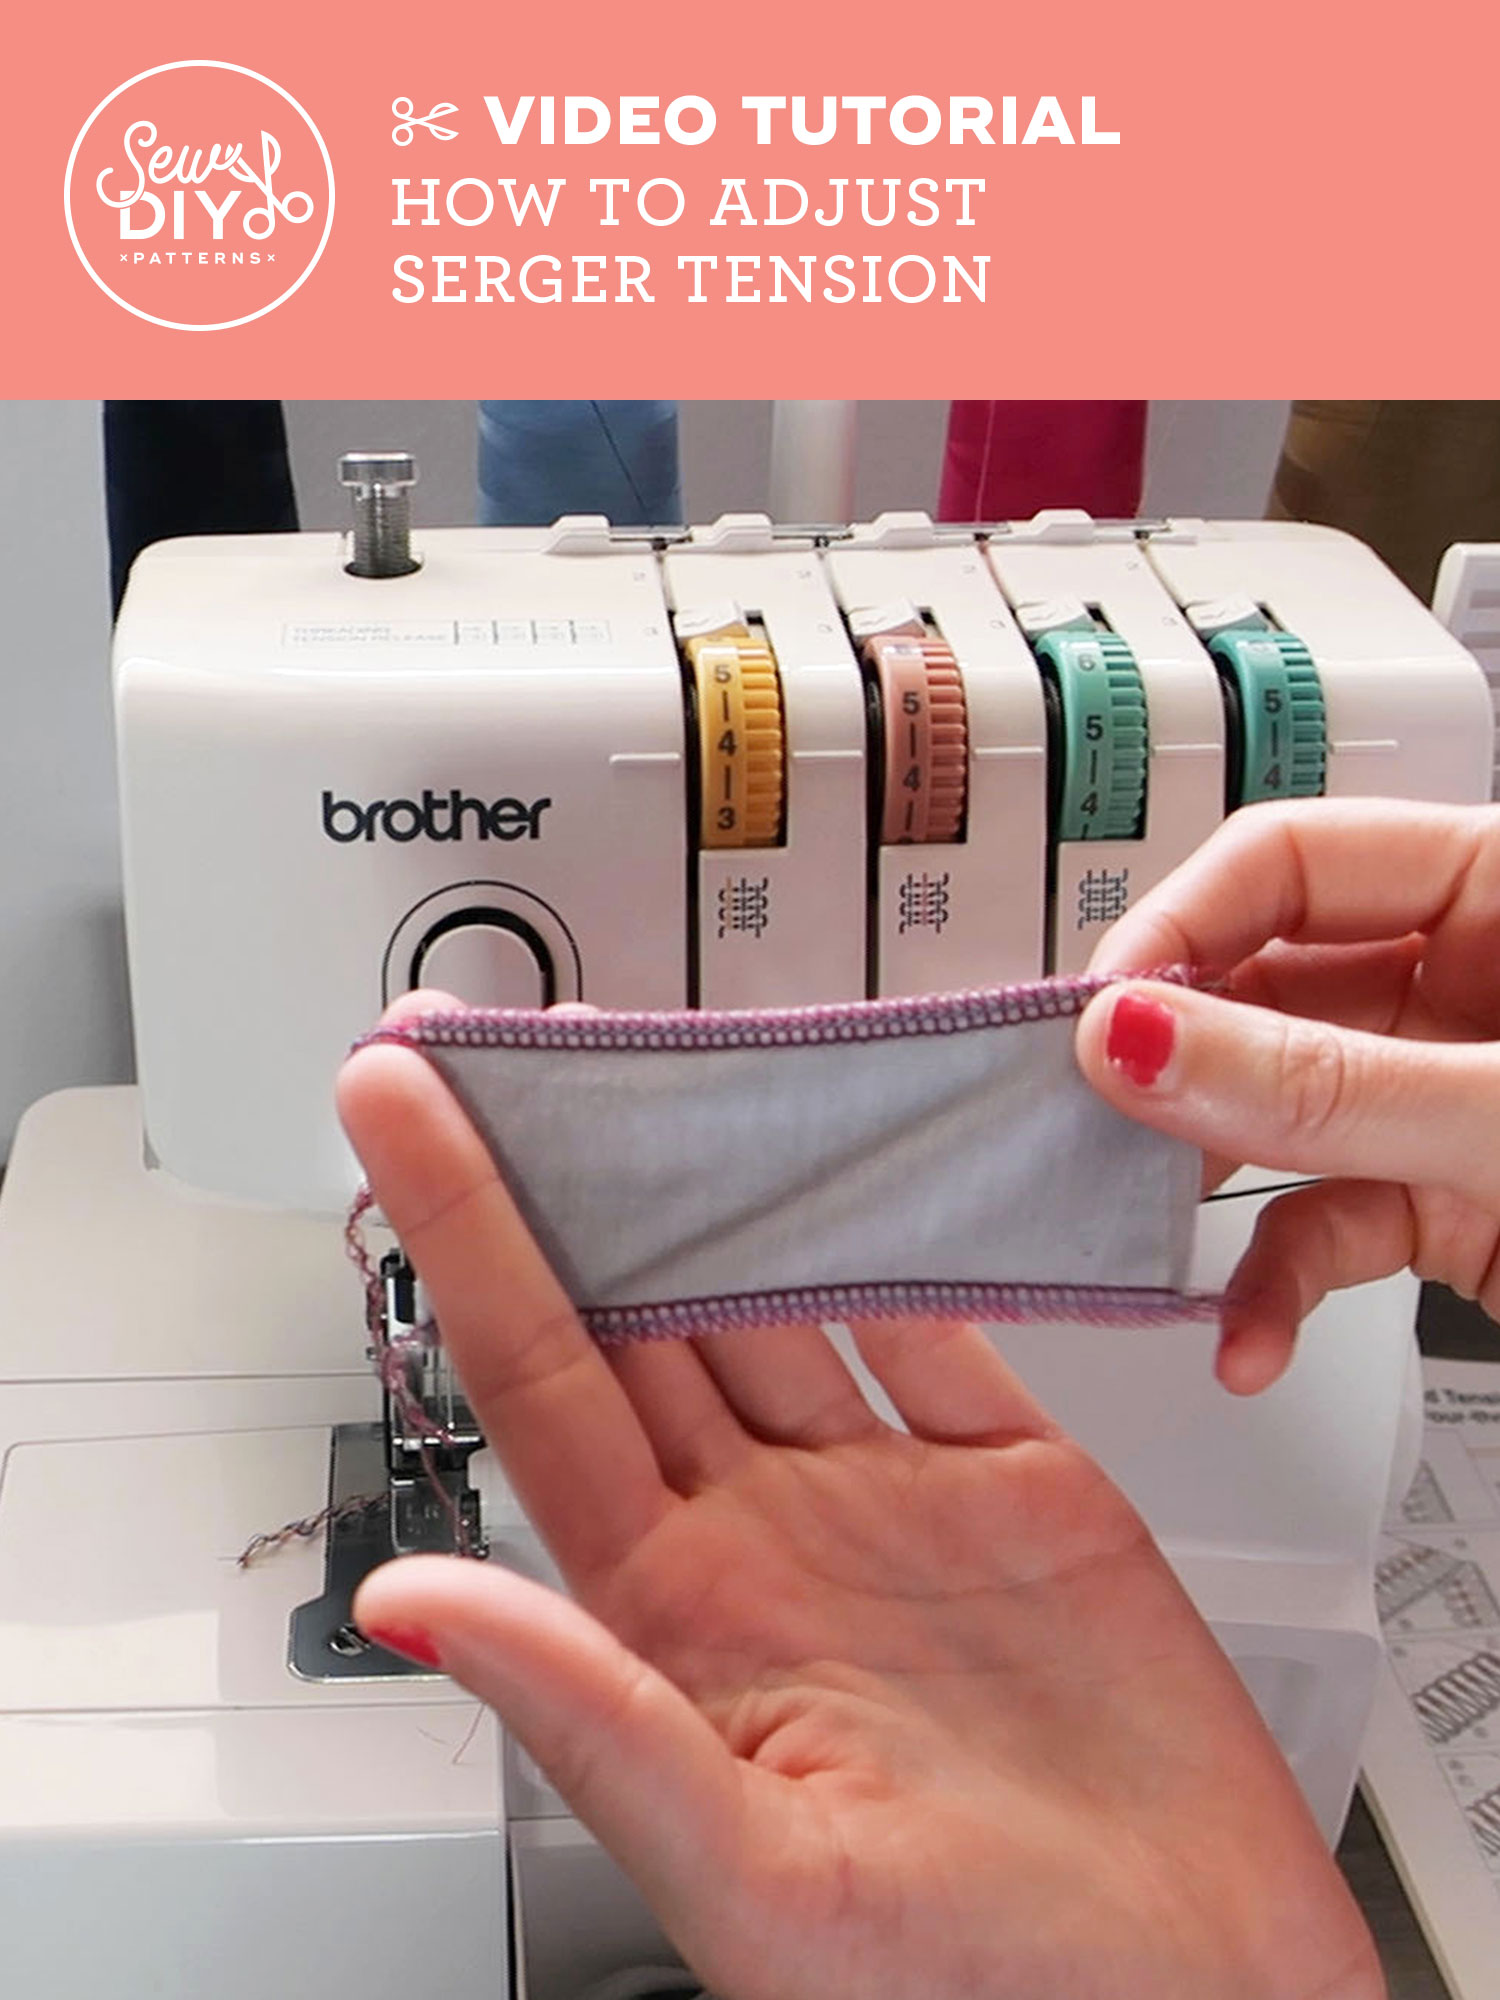 VIDEO Tutorial How to Adjust Serger Tension by Sew DIY